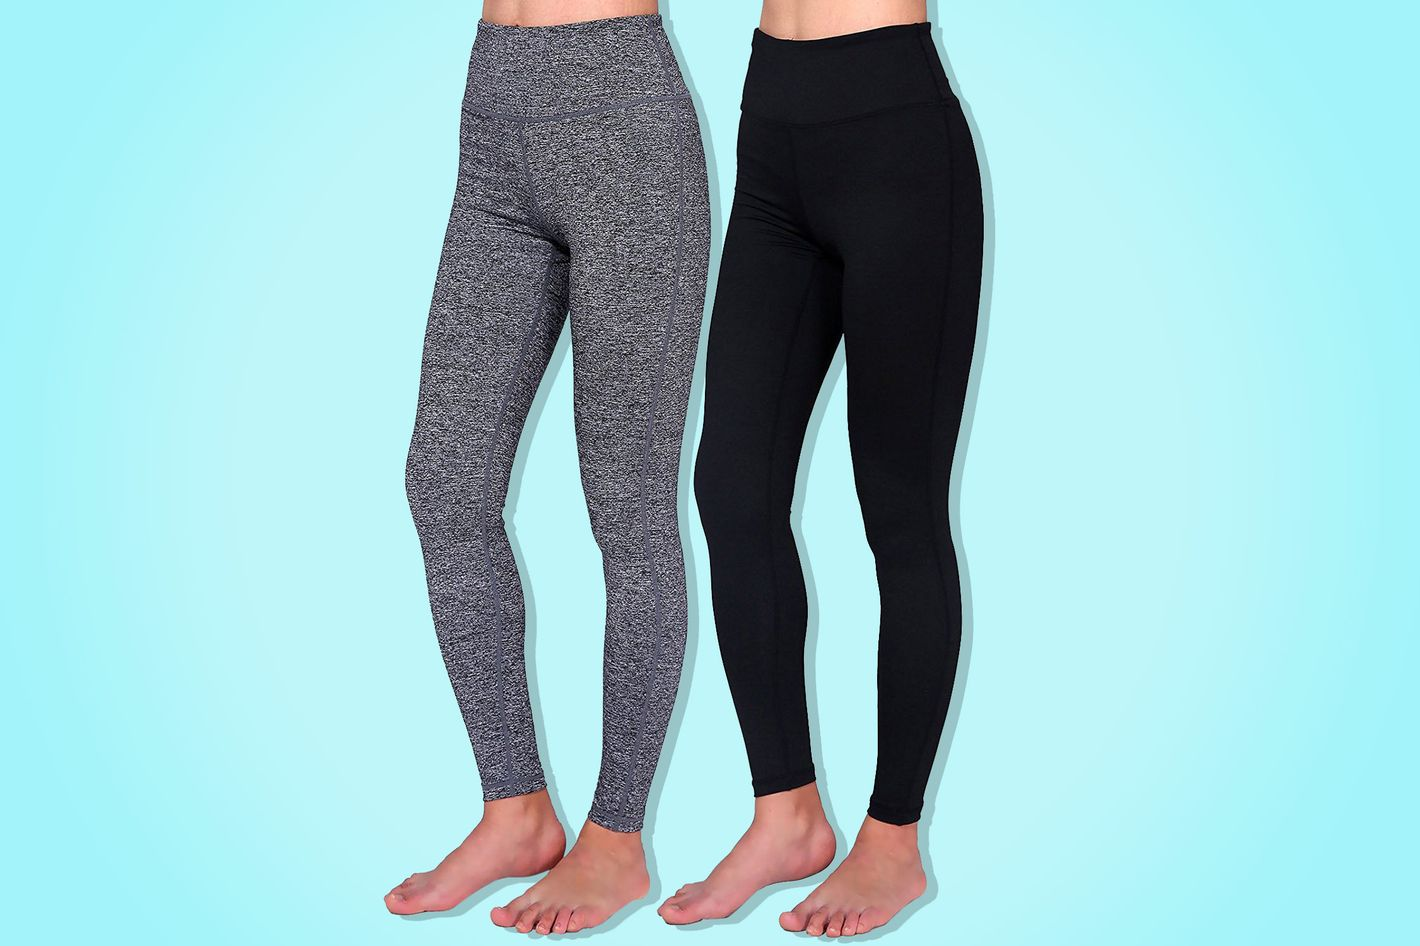 93c3ebfeccfd5 The 20 Best Yoga Pants for Women 2019